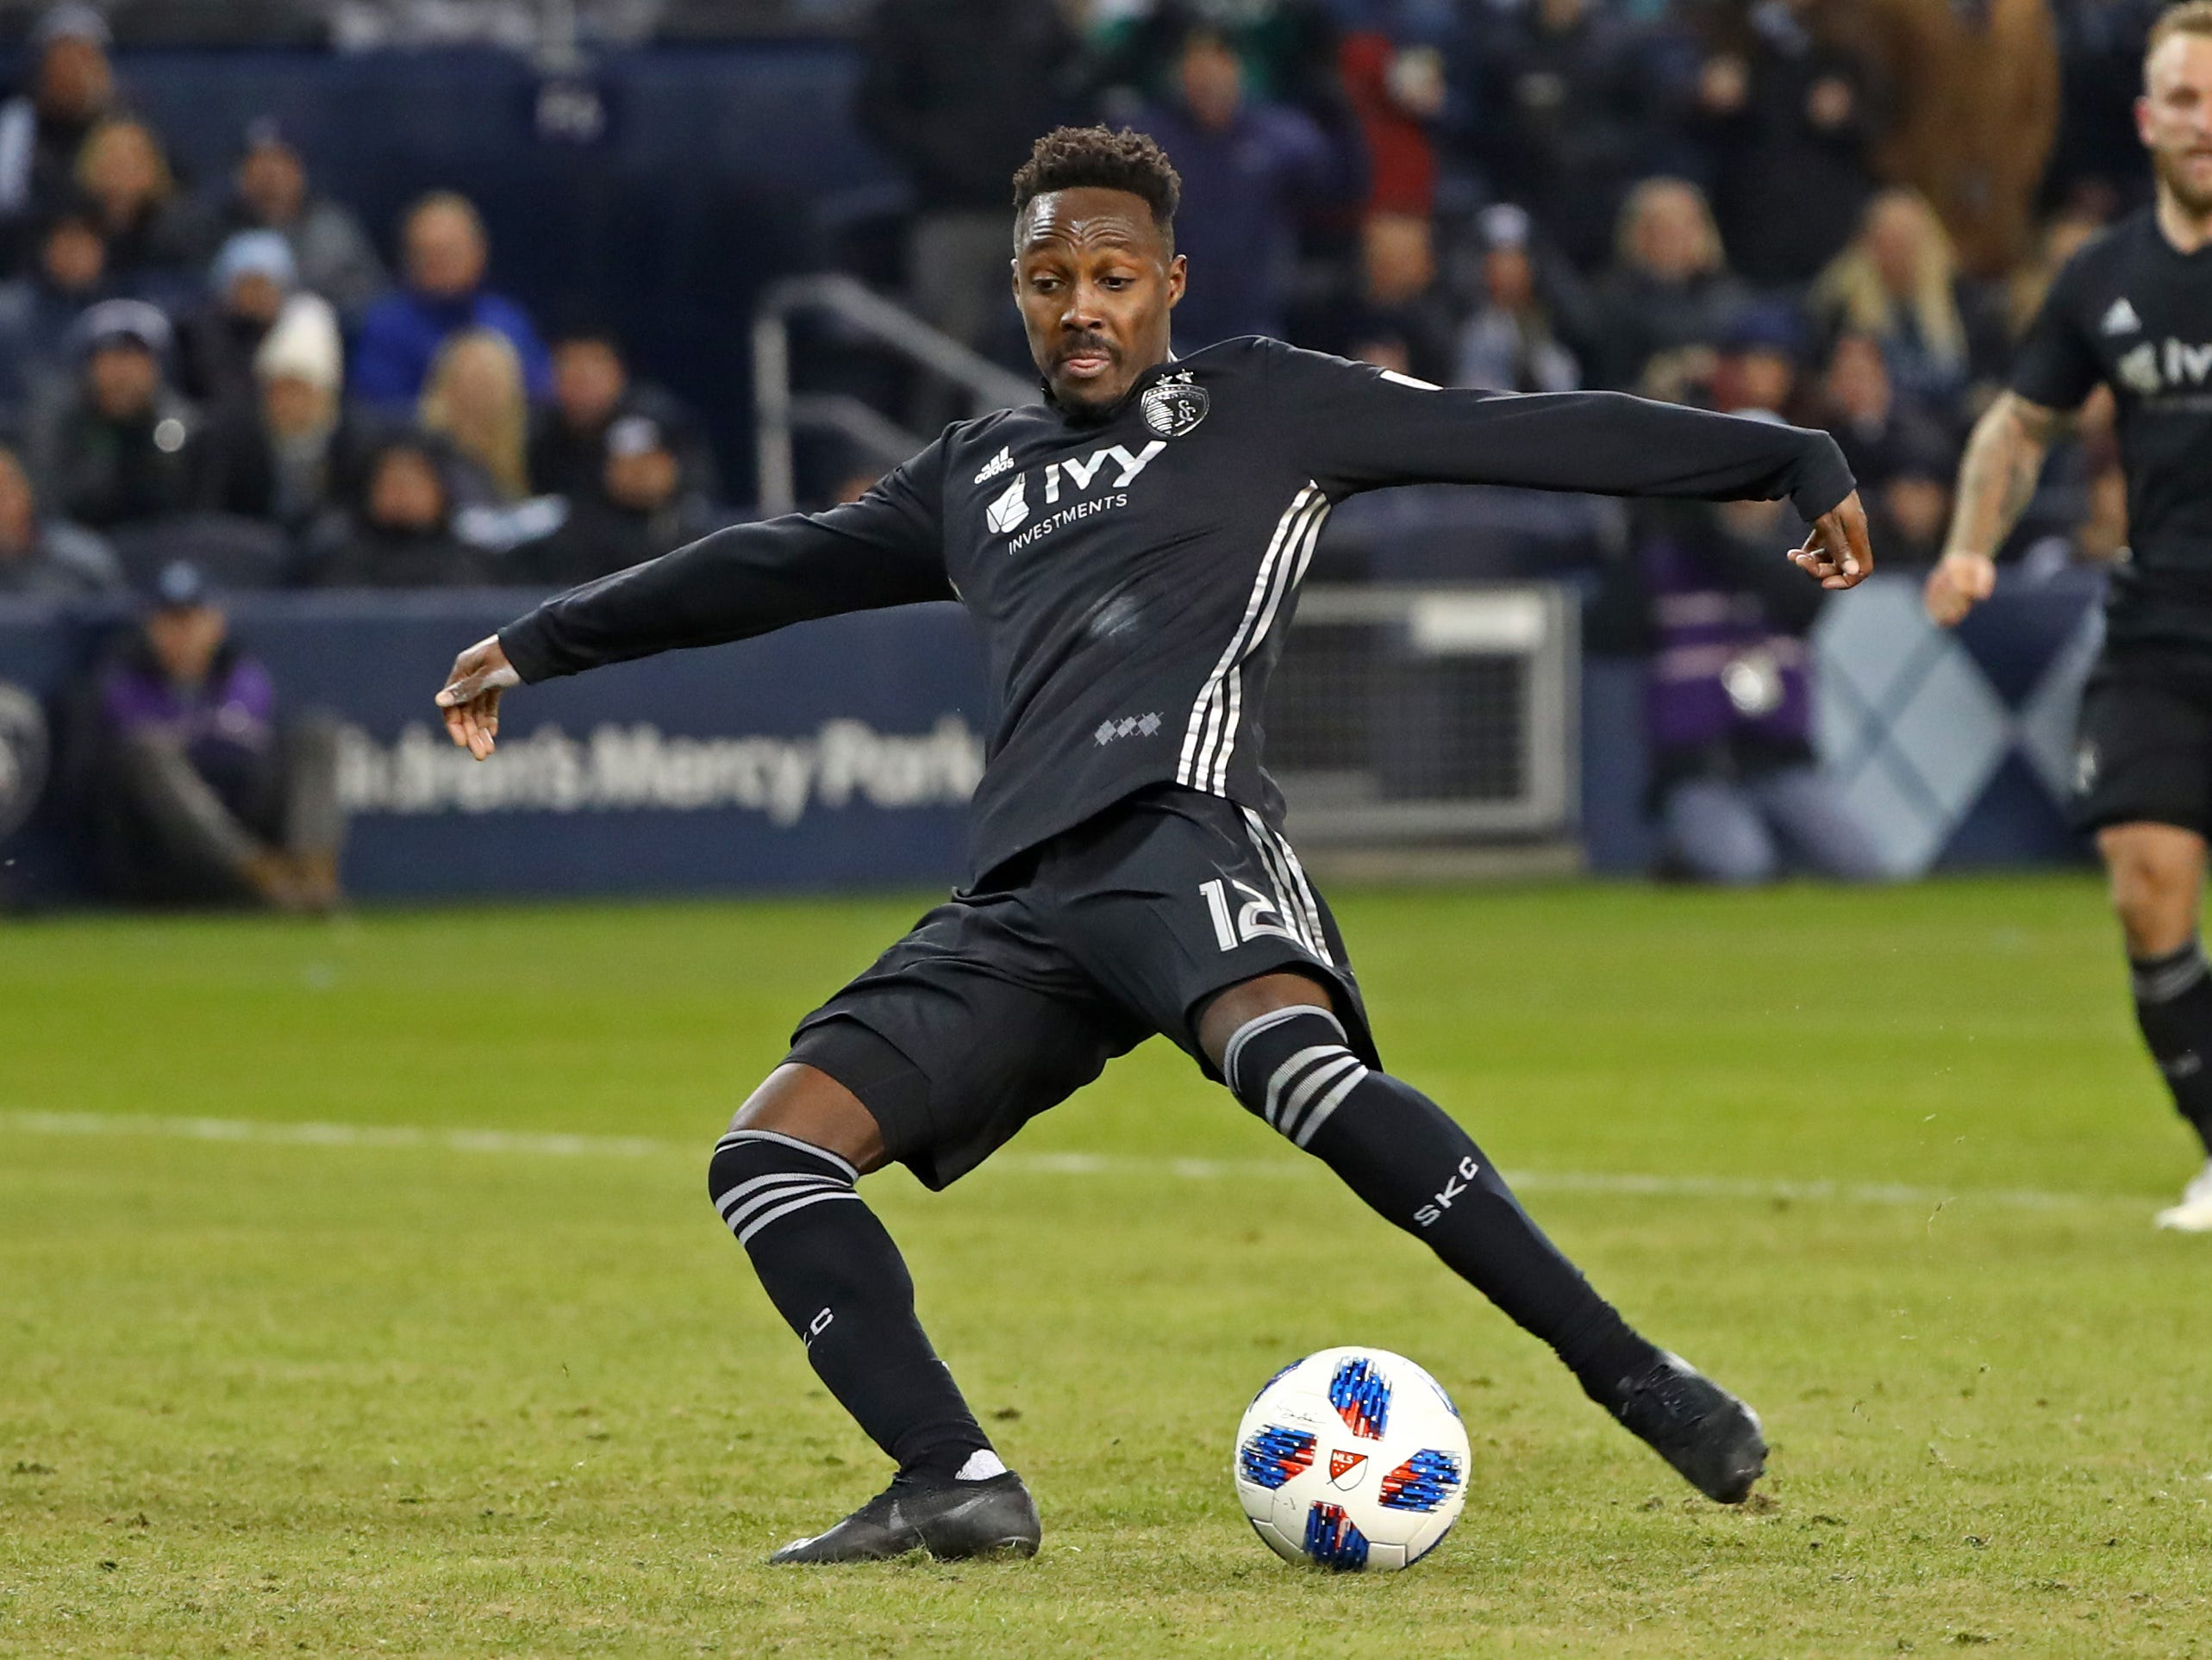 Nov 29, 2018; Kansas City, KS, USA; Sporting Kansas City forward Gerso (12) scores a goal against the Portland Timbers during the second half in the second leg of the MLS Western Conference Championship at Children's Mercy Park. Mandatory Credit: Jay Biggerstaff-USA TODAY Sports